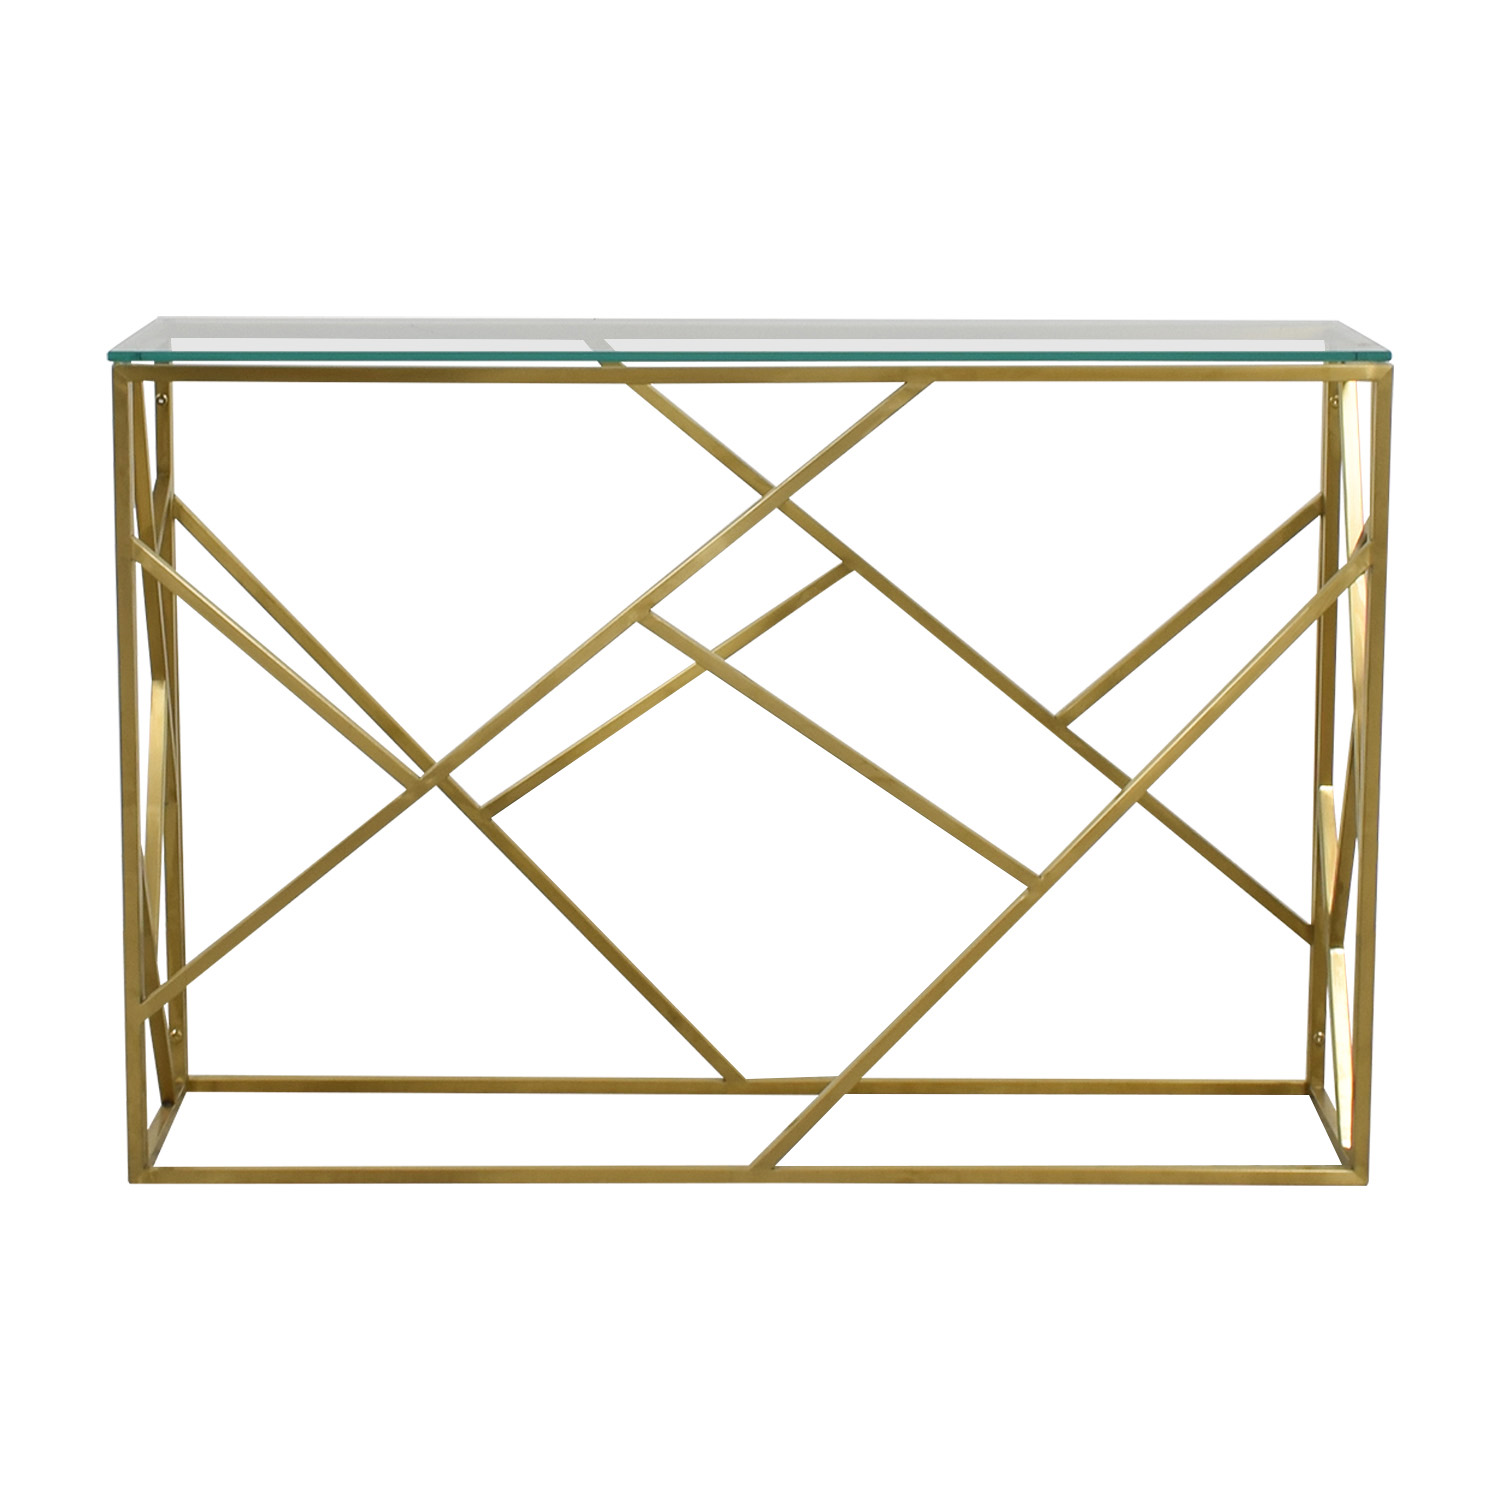 Modani Modani Arago Gold Console Table used